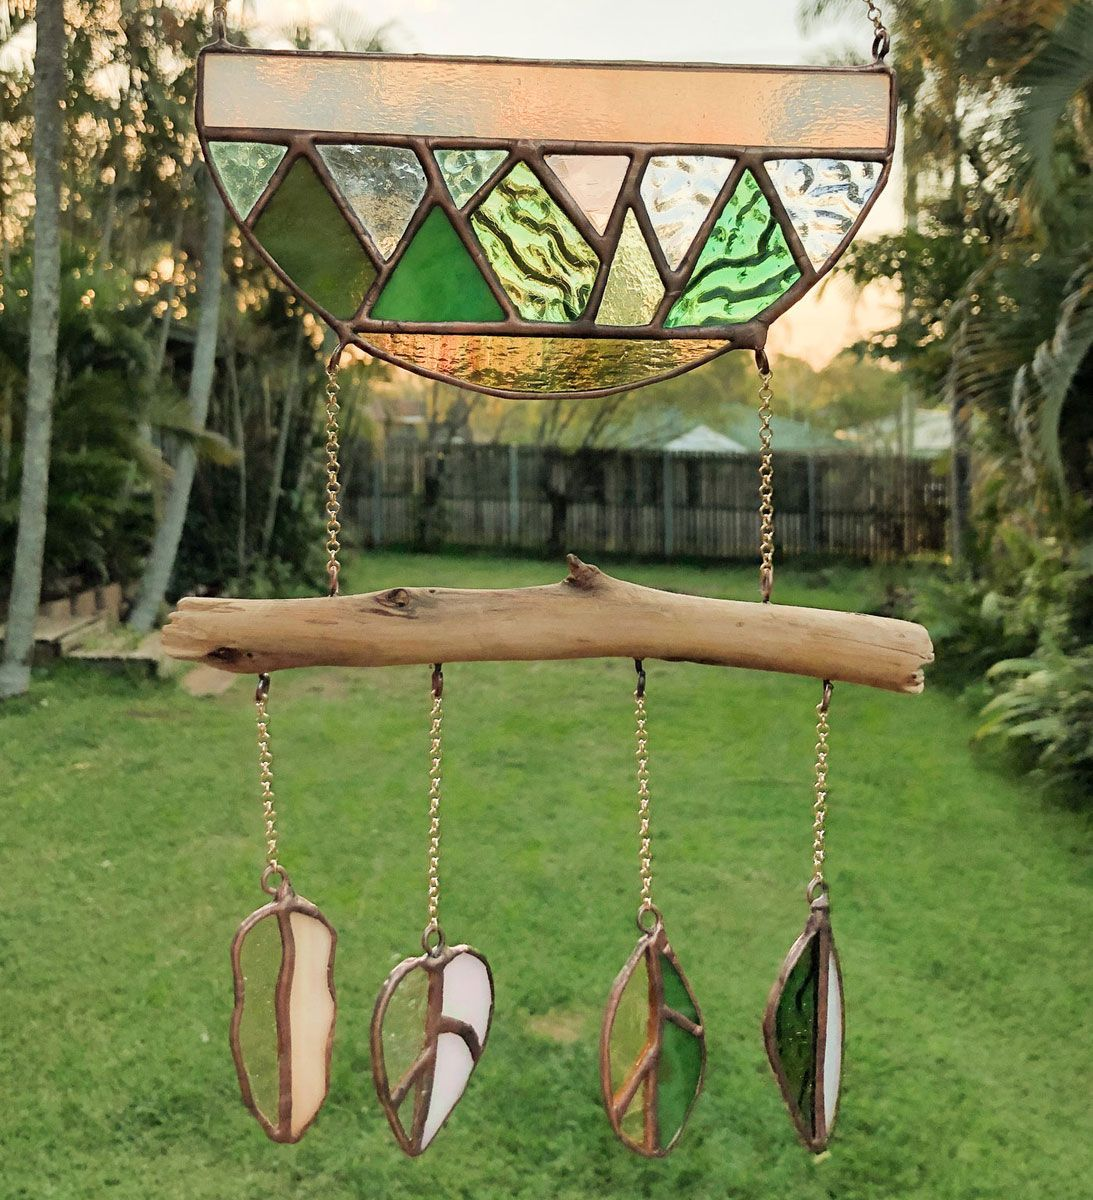 A mountain and forest themed stain glass wind chime / sun catcher in the late afternoon QLD sun